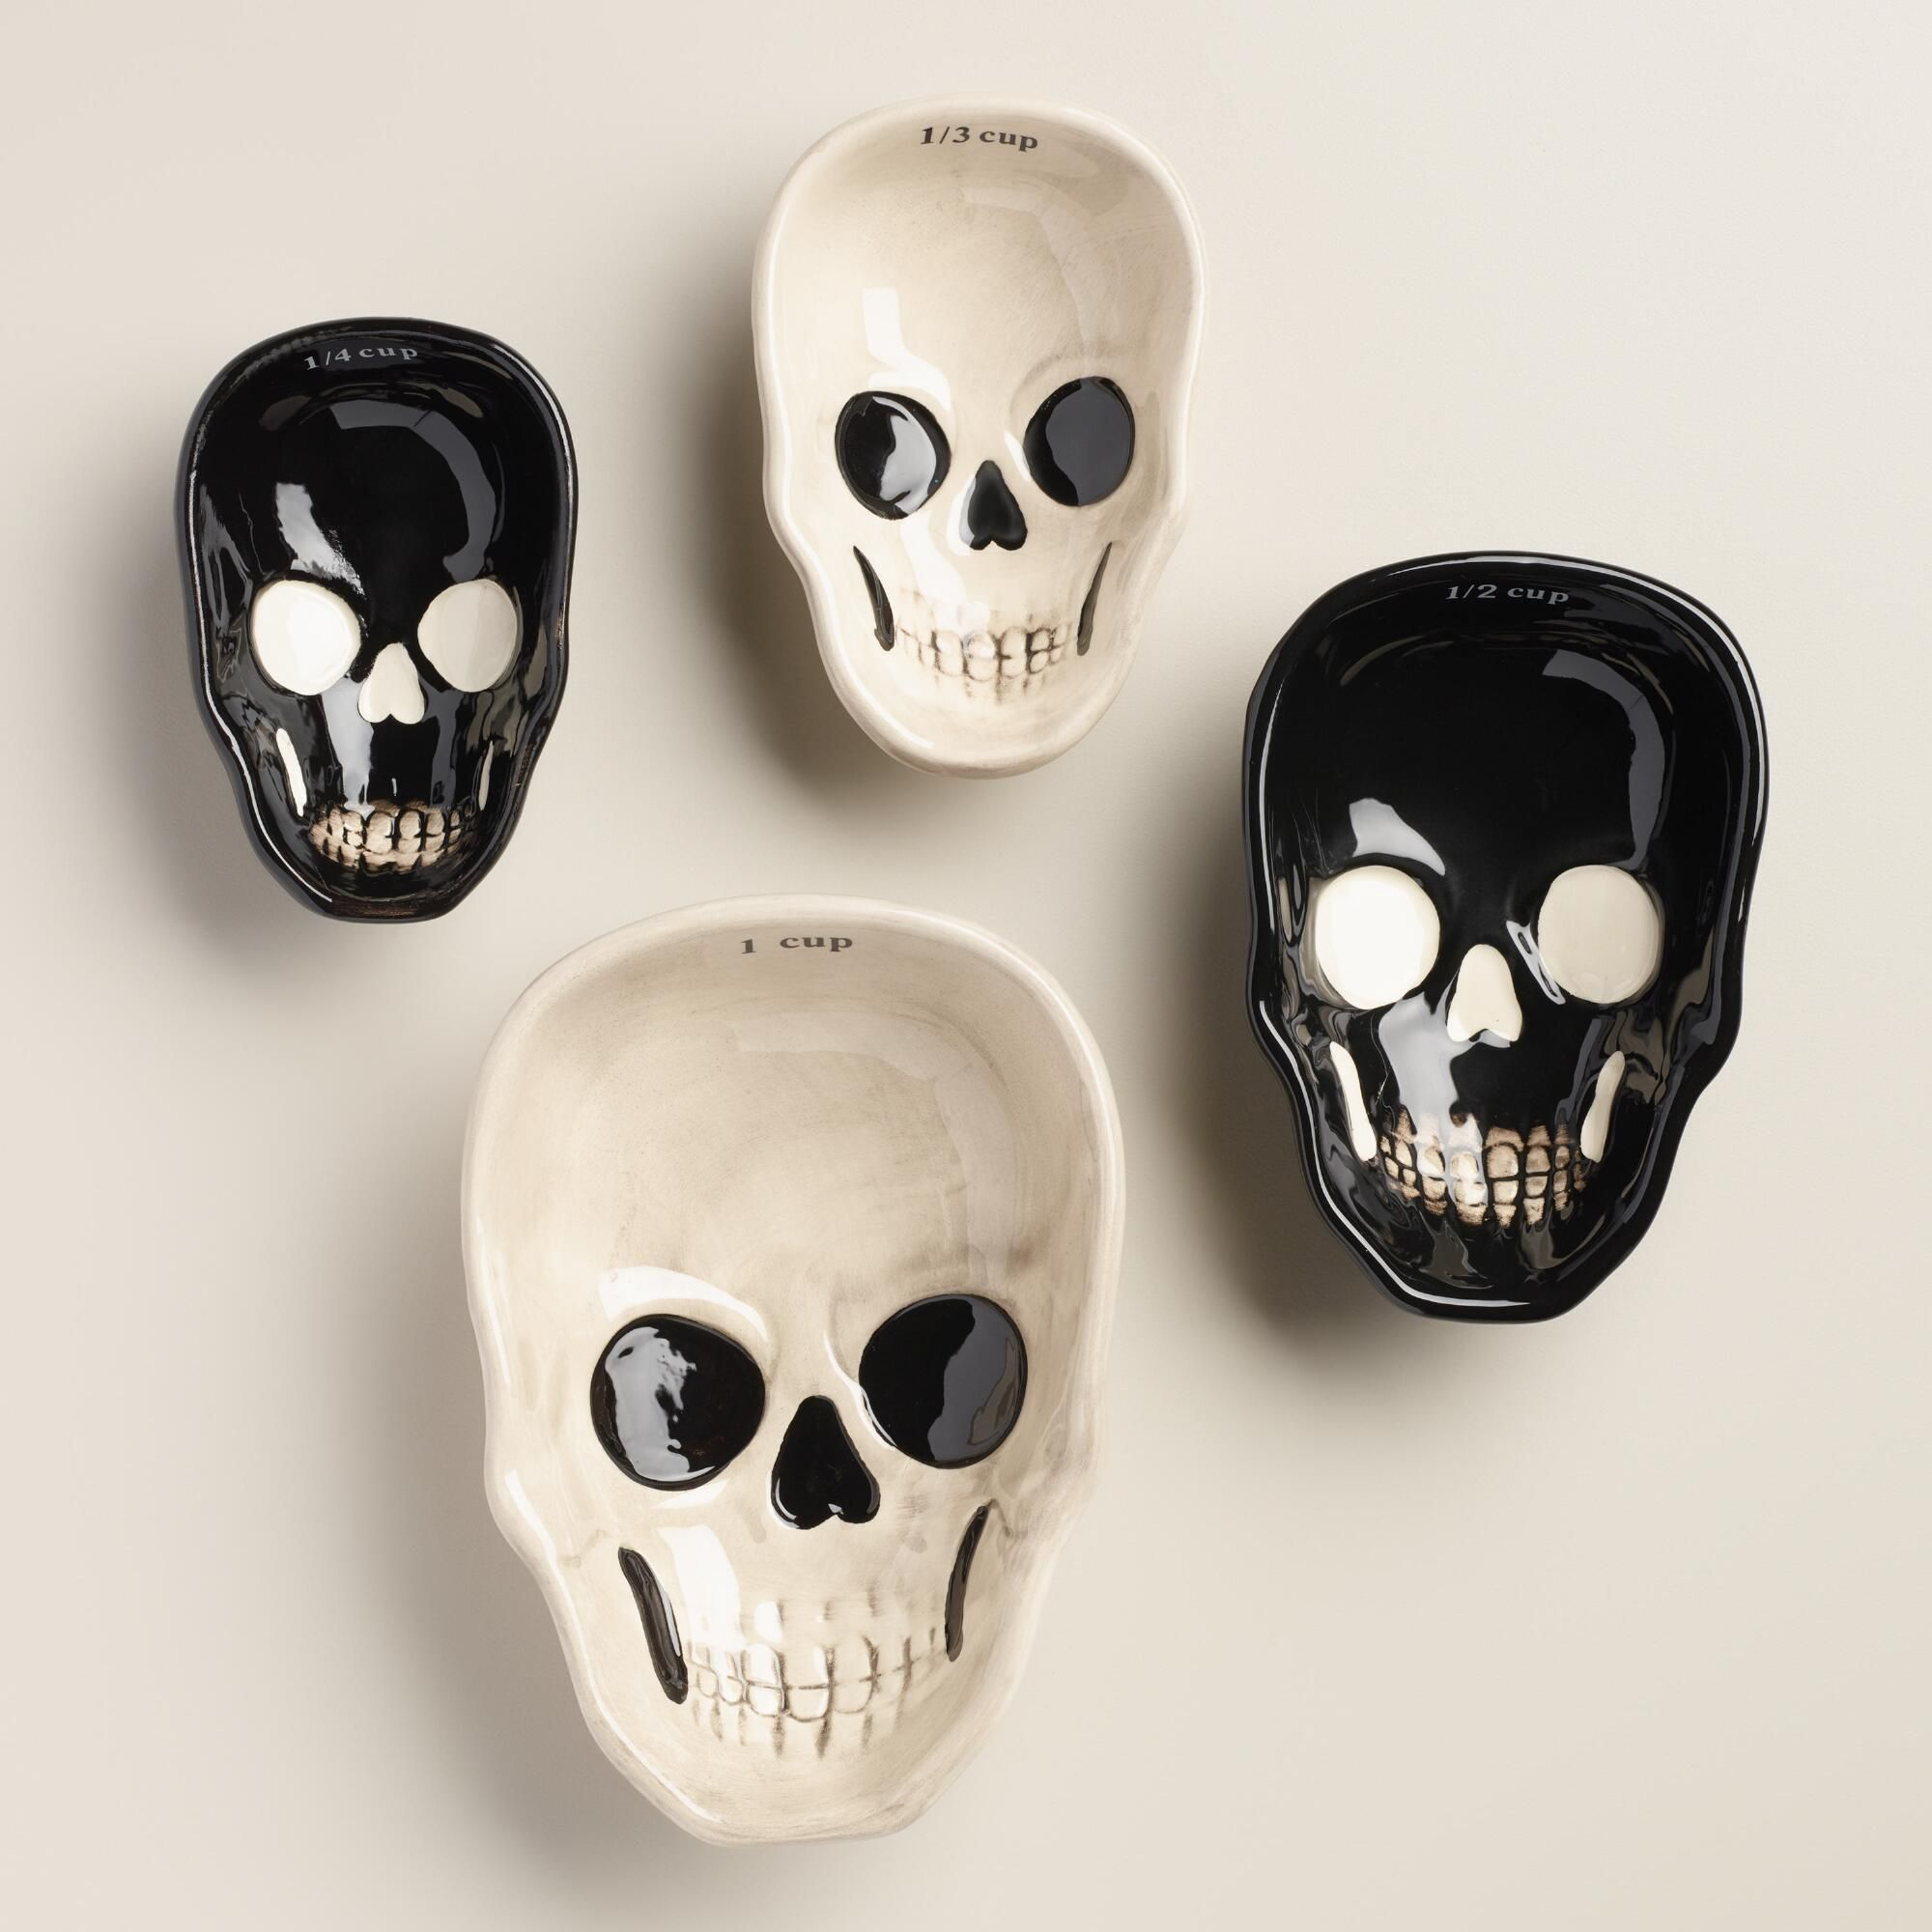 09b870607c69 Our black and white ceramic skull measuring cups feature contrast ...